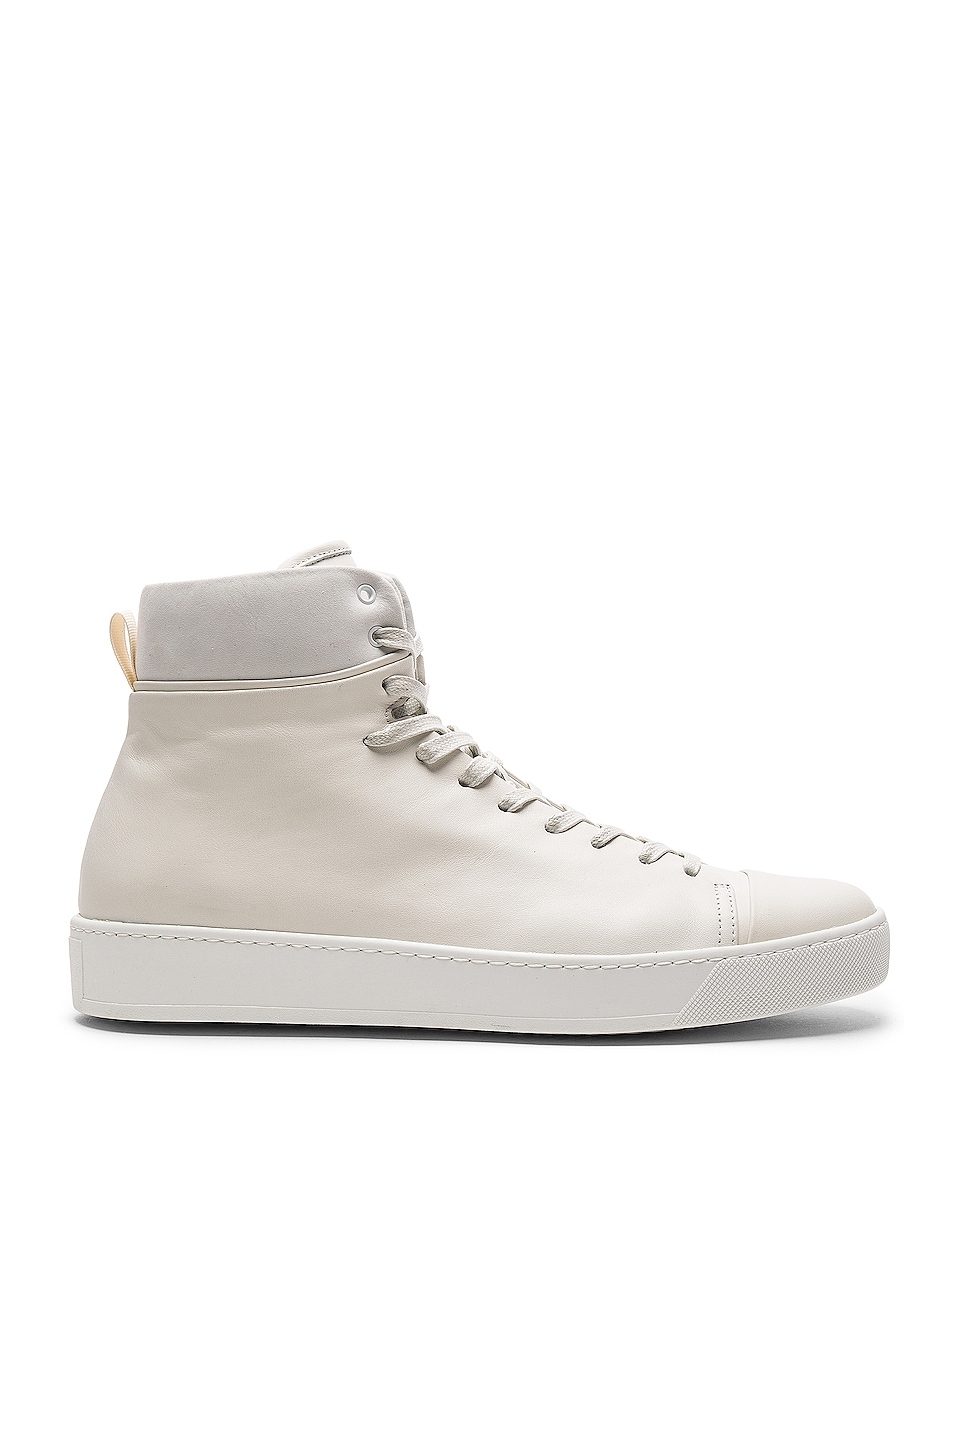 JOHN ELLIOTT Leather High Top Sneakers in White